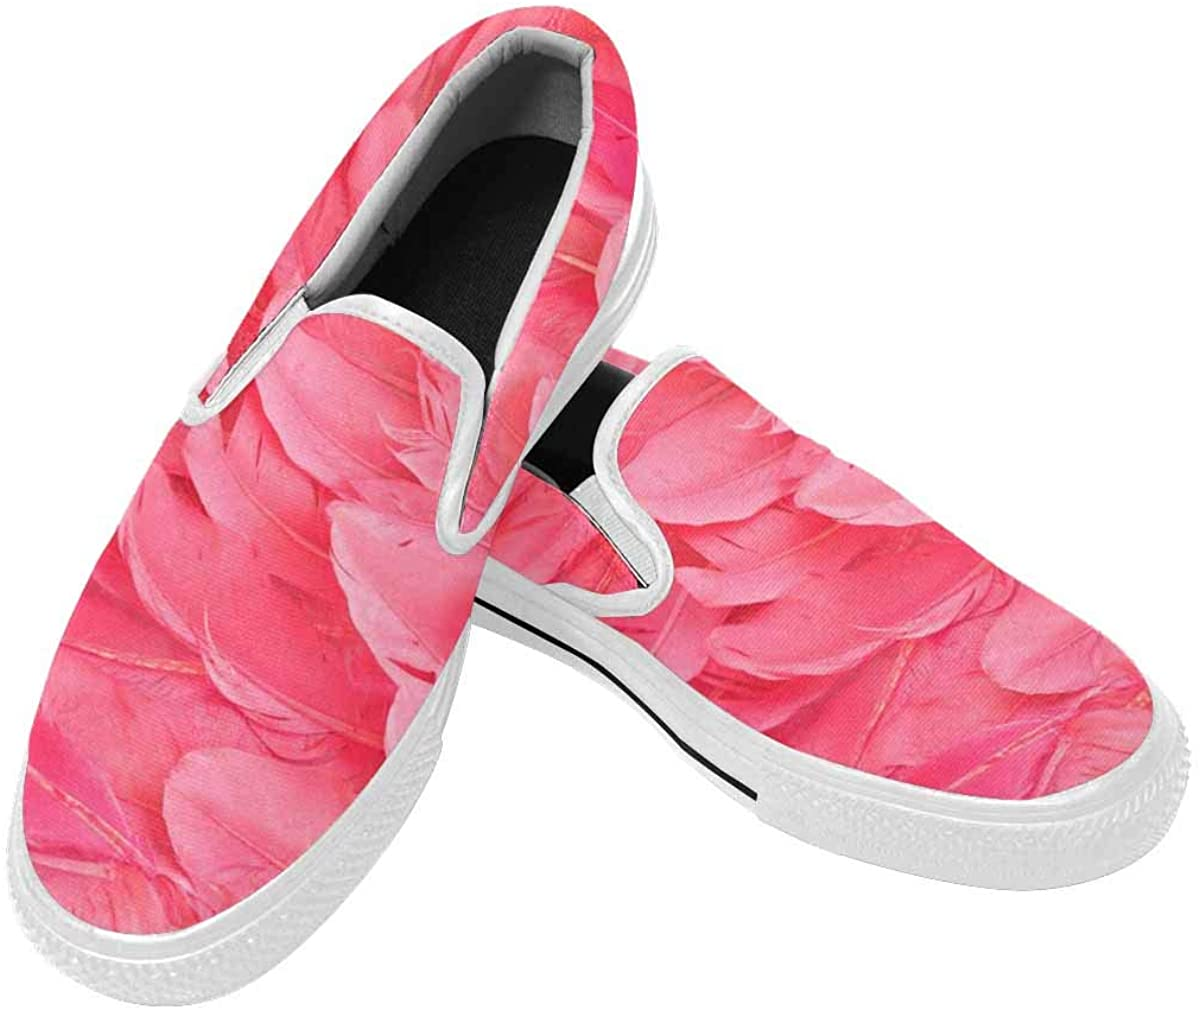 InterestPrint Mens Slip-On Canvas Shoes Casual Comfort Lightweight Loafers Flat Outdoor Sneakers Pink Flamingo Feather